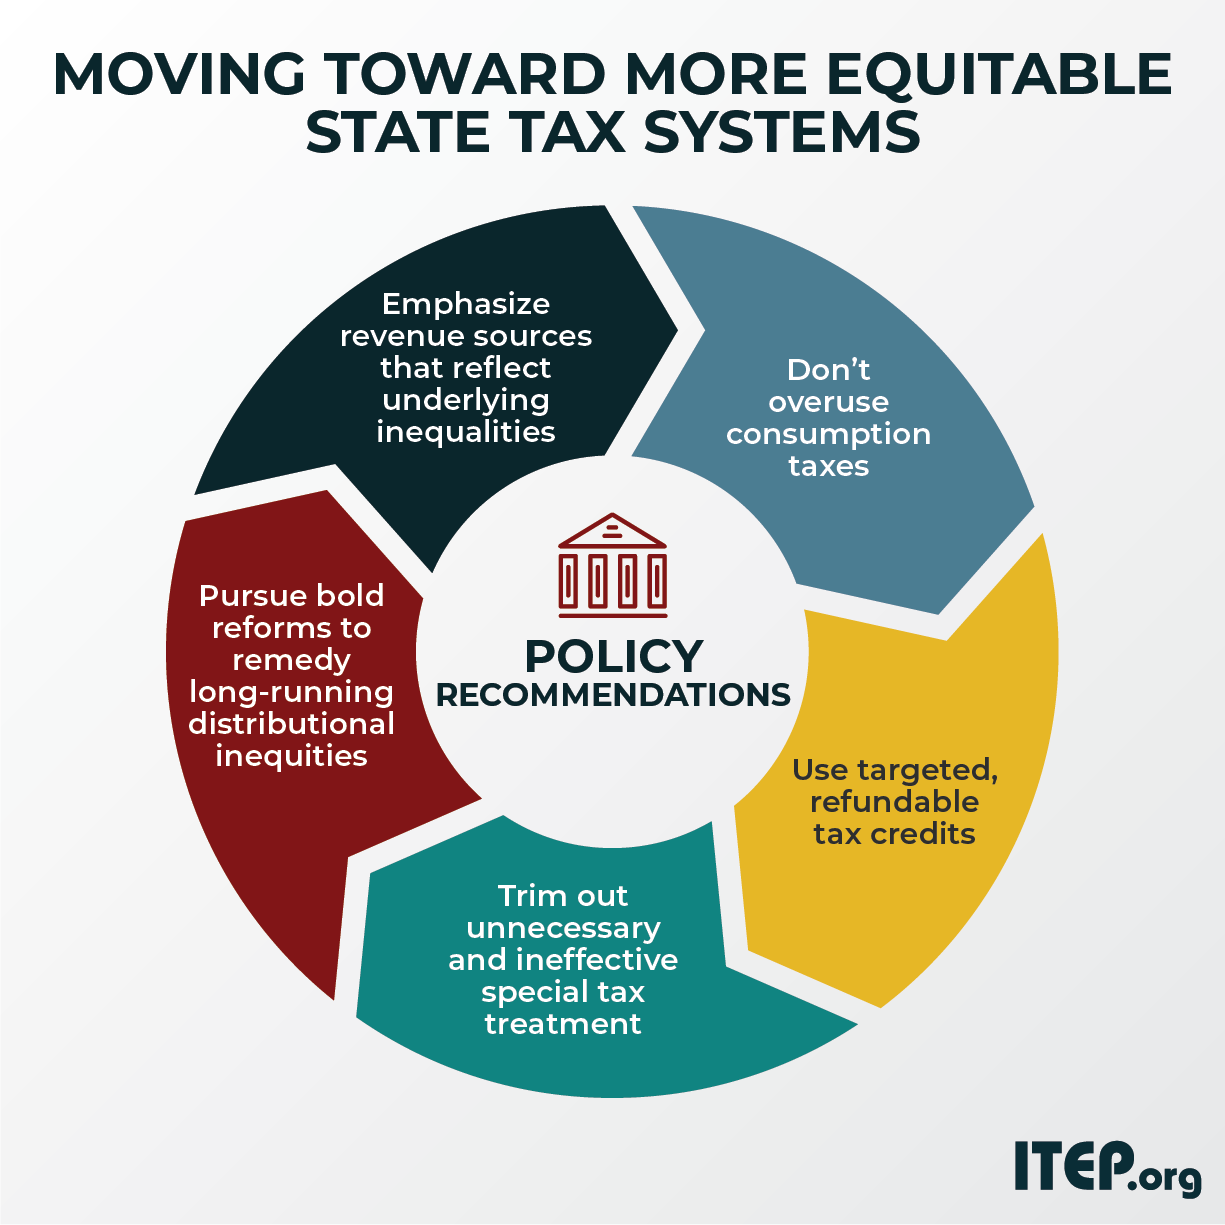 How to Develop More Equitable State Tax Systems